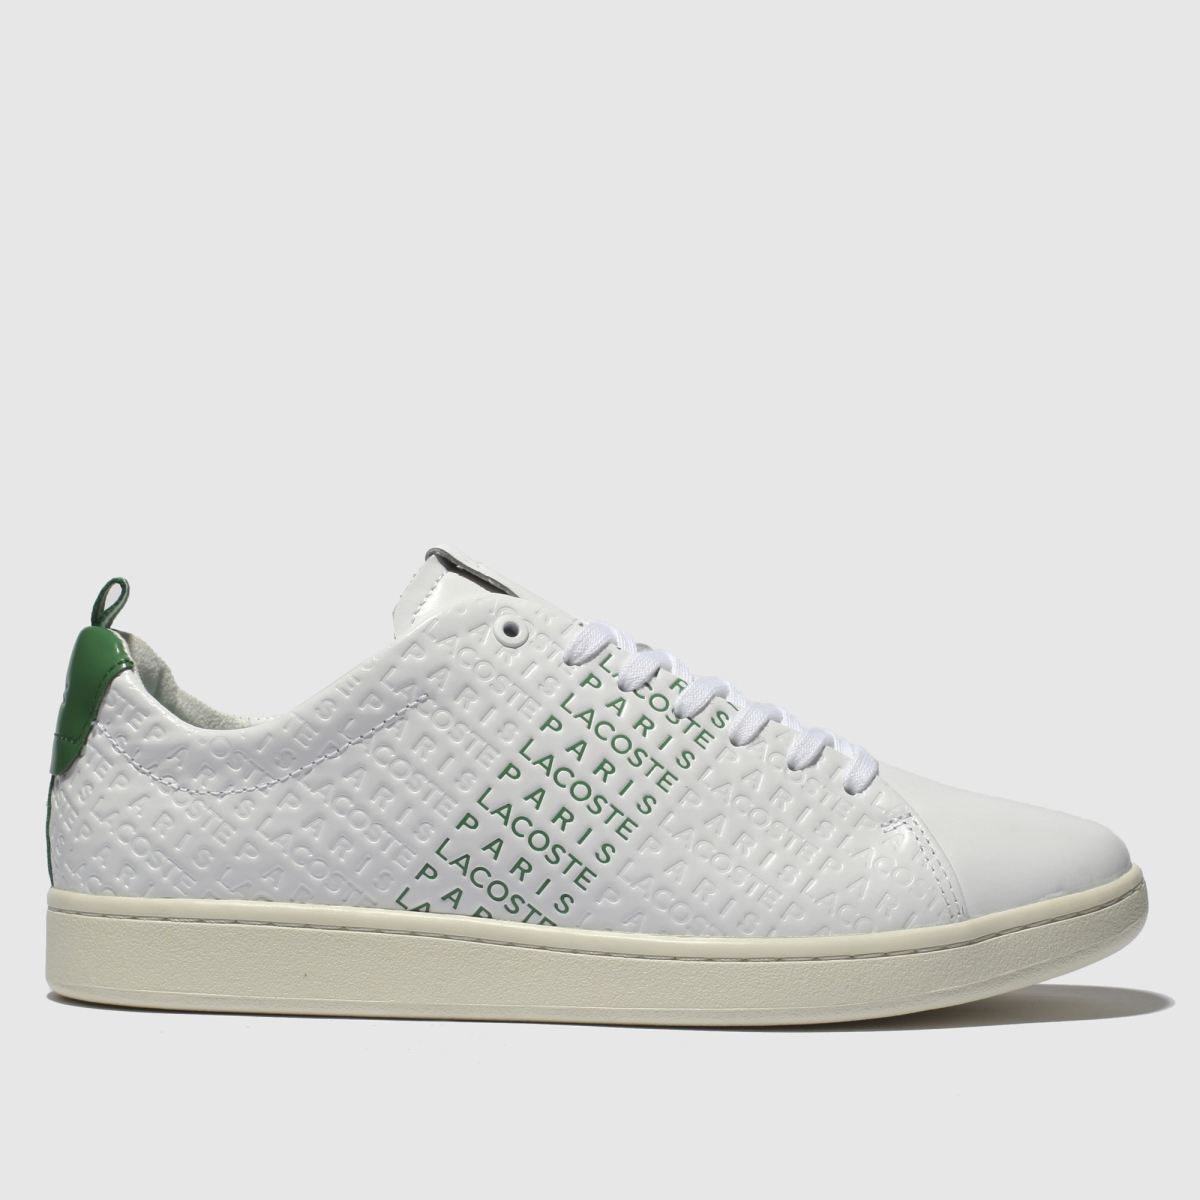 Lacoste White & Green Carnaby Evo Trainers